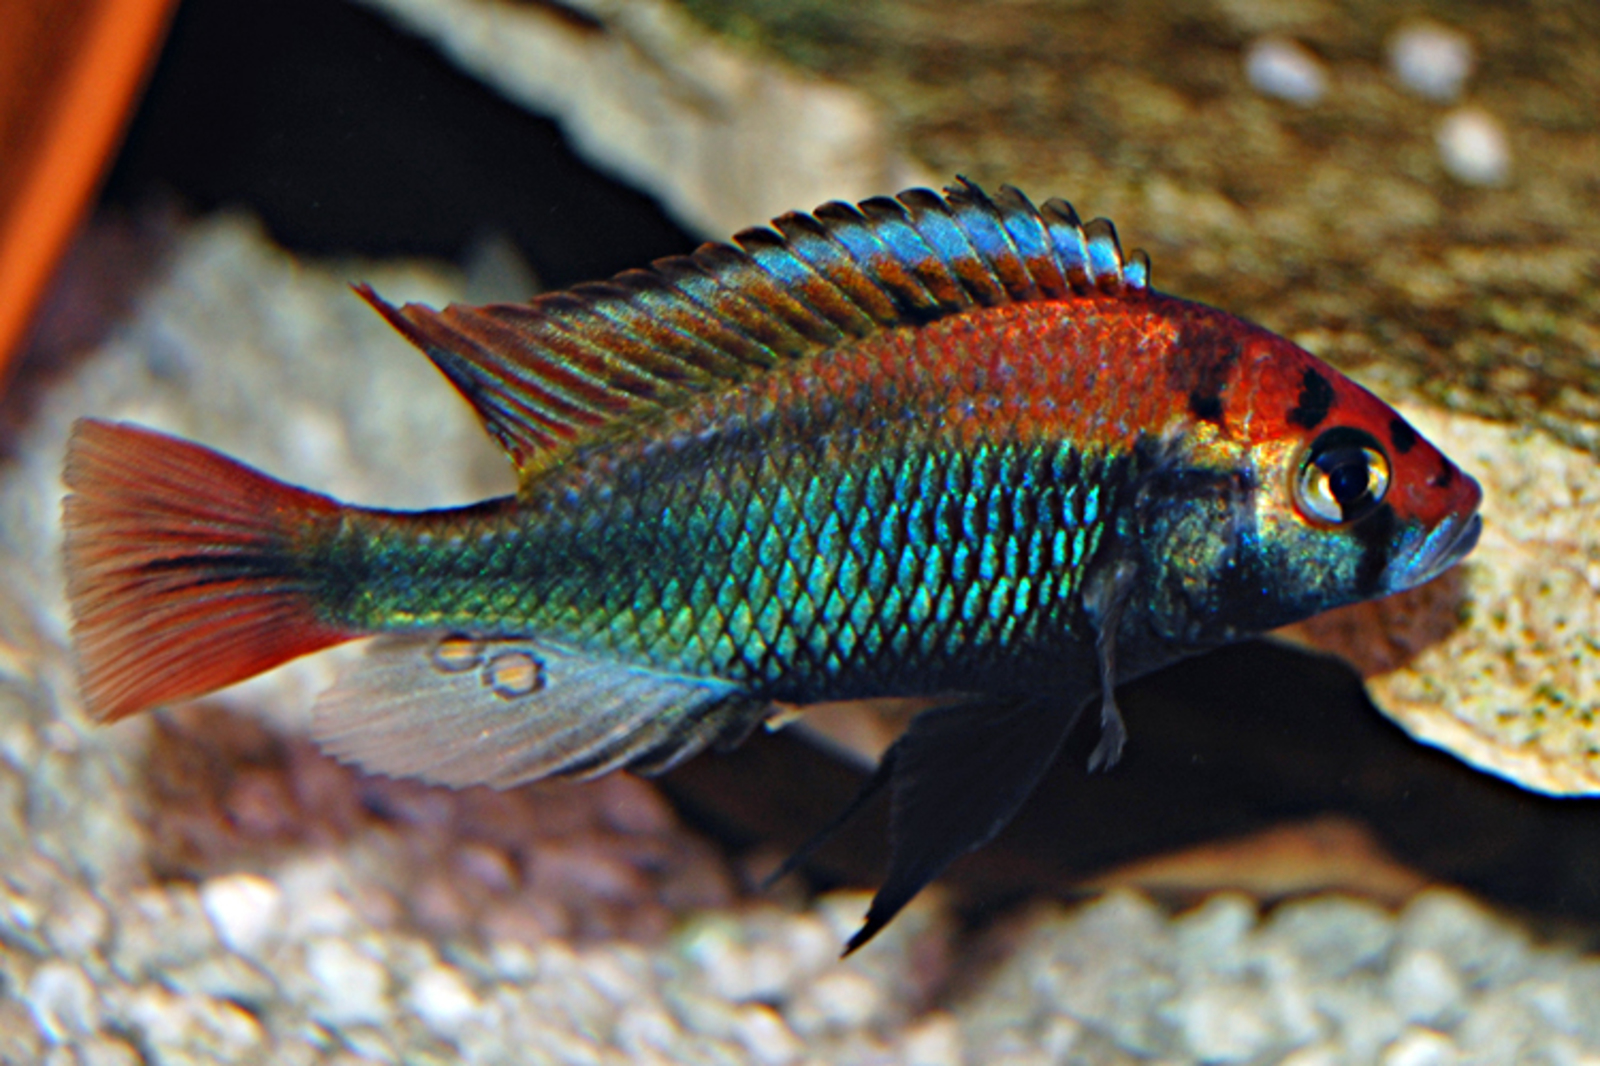 My male haplochromis cichlid  | by jdempsey